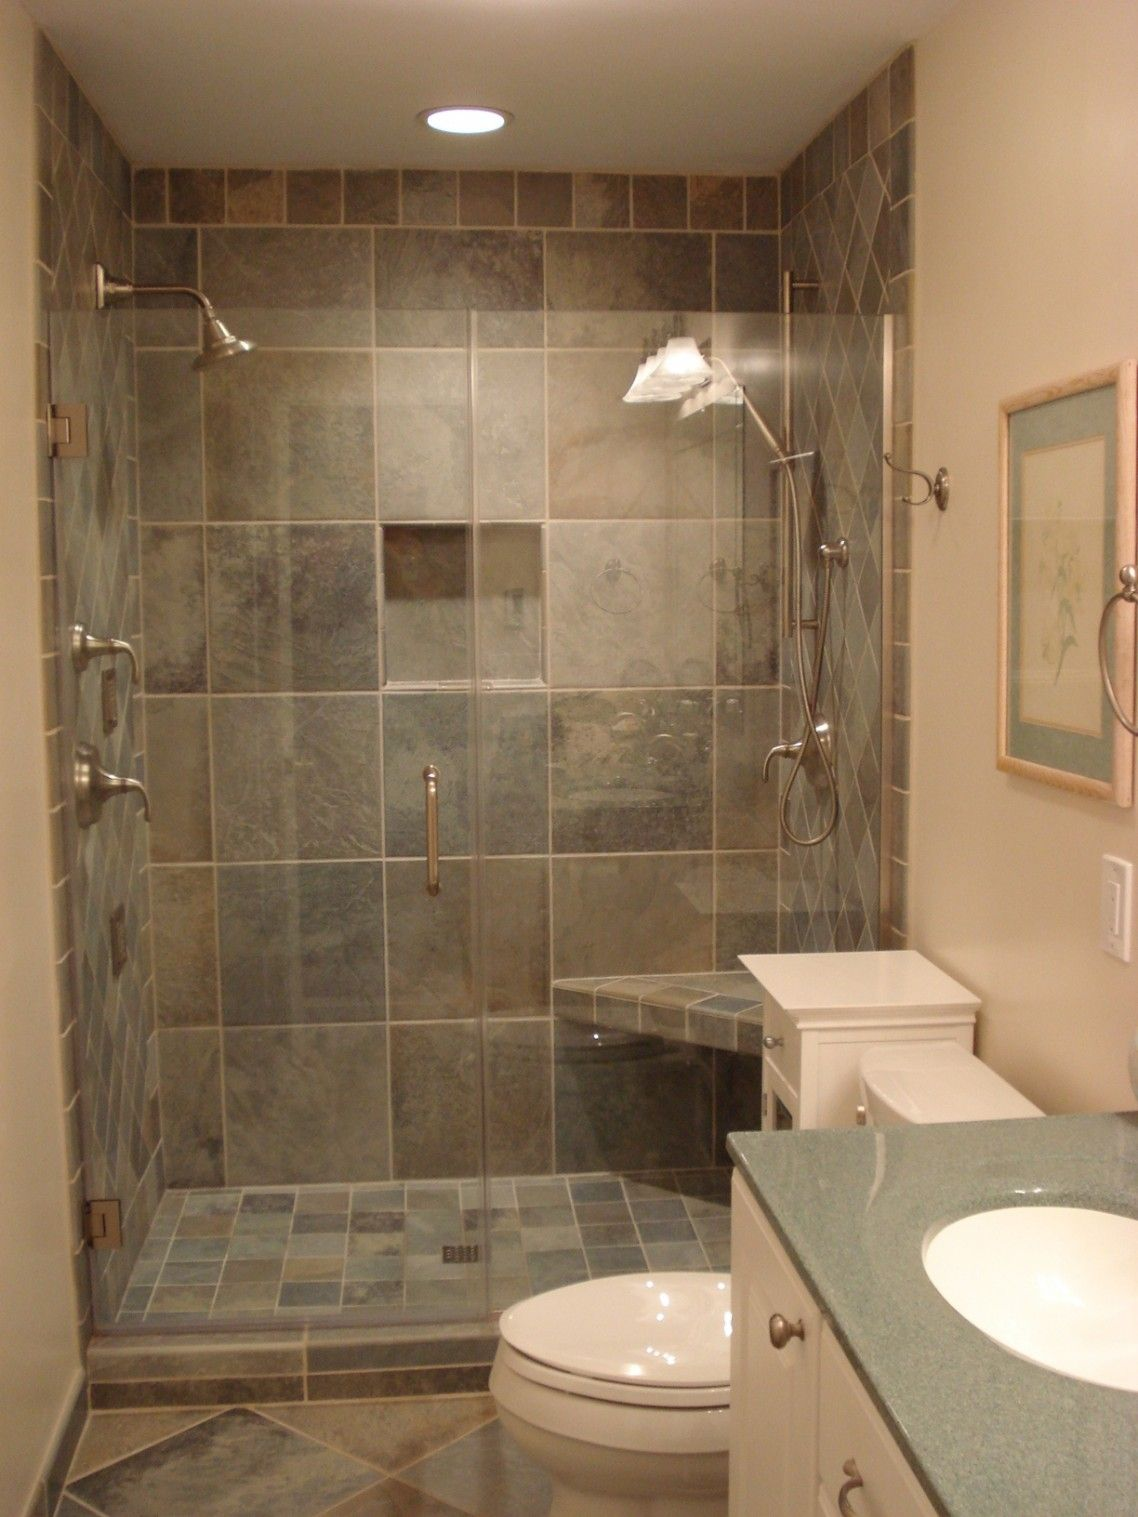 Bathroom Remodel Cost Ct bathroom remodels with showers |  shower-slate-tiles-wall-and